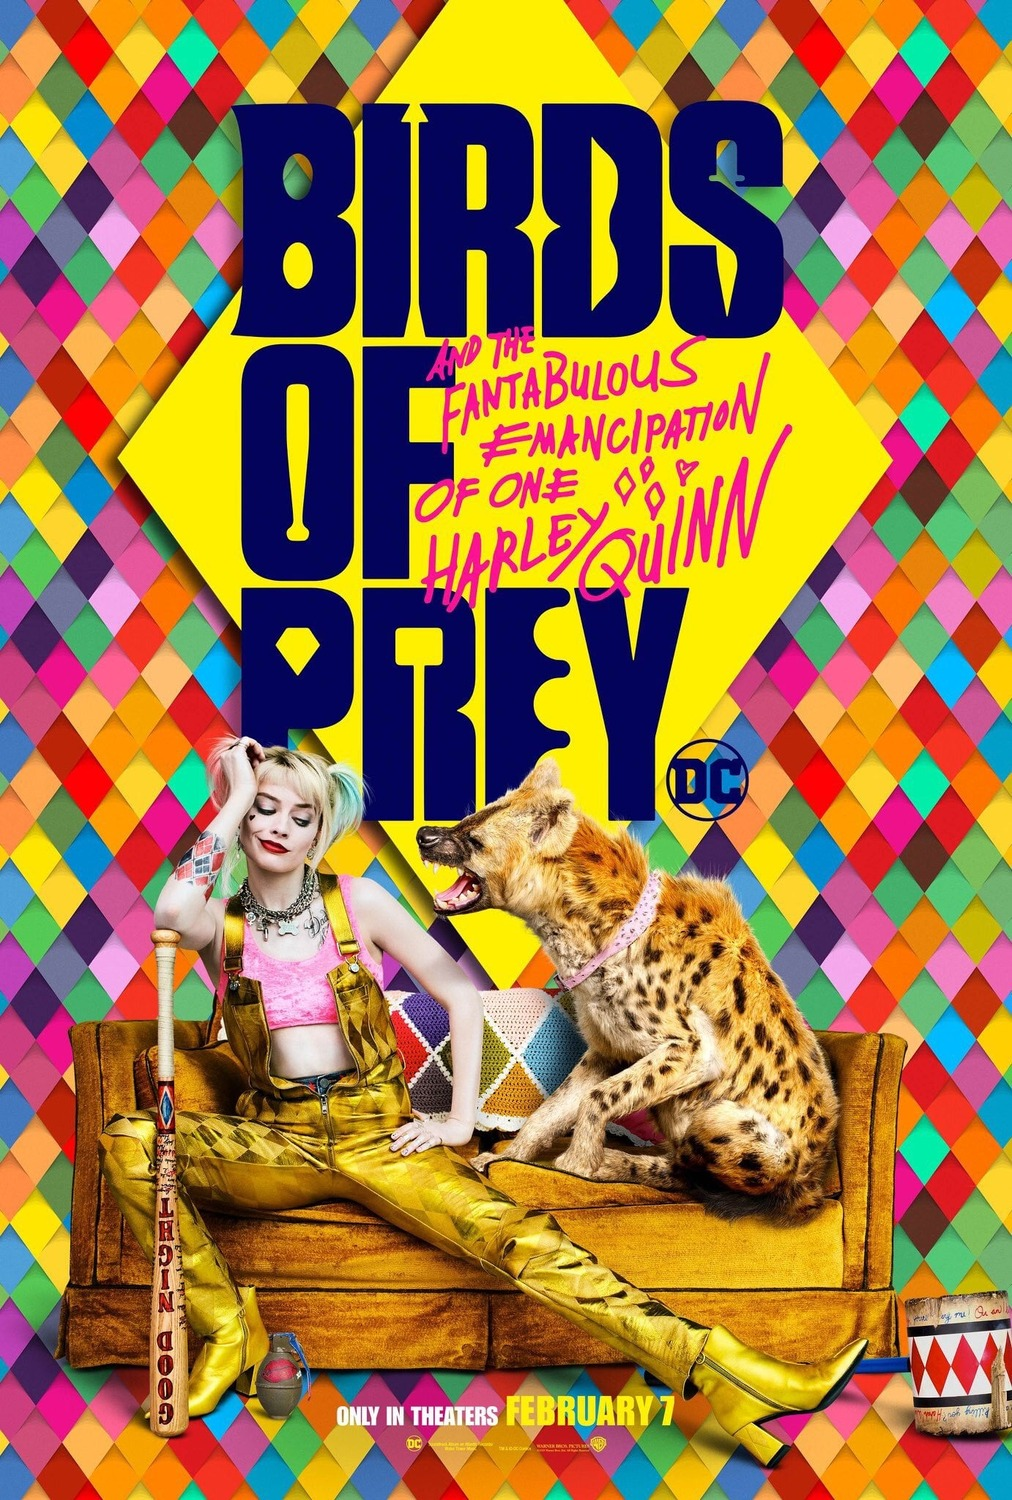 Harley Quinn Film -Birds of Prey